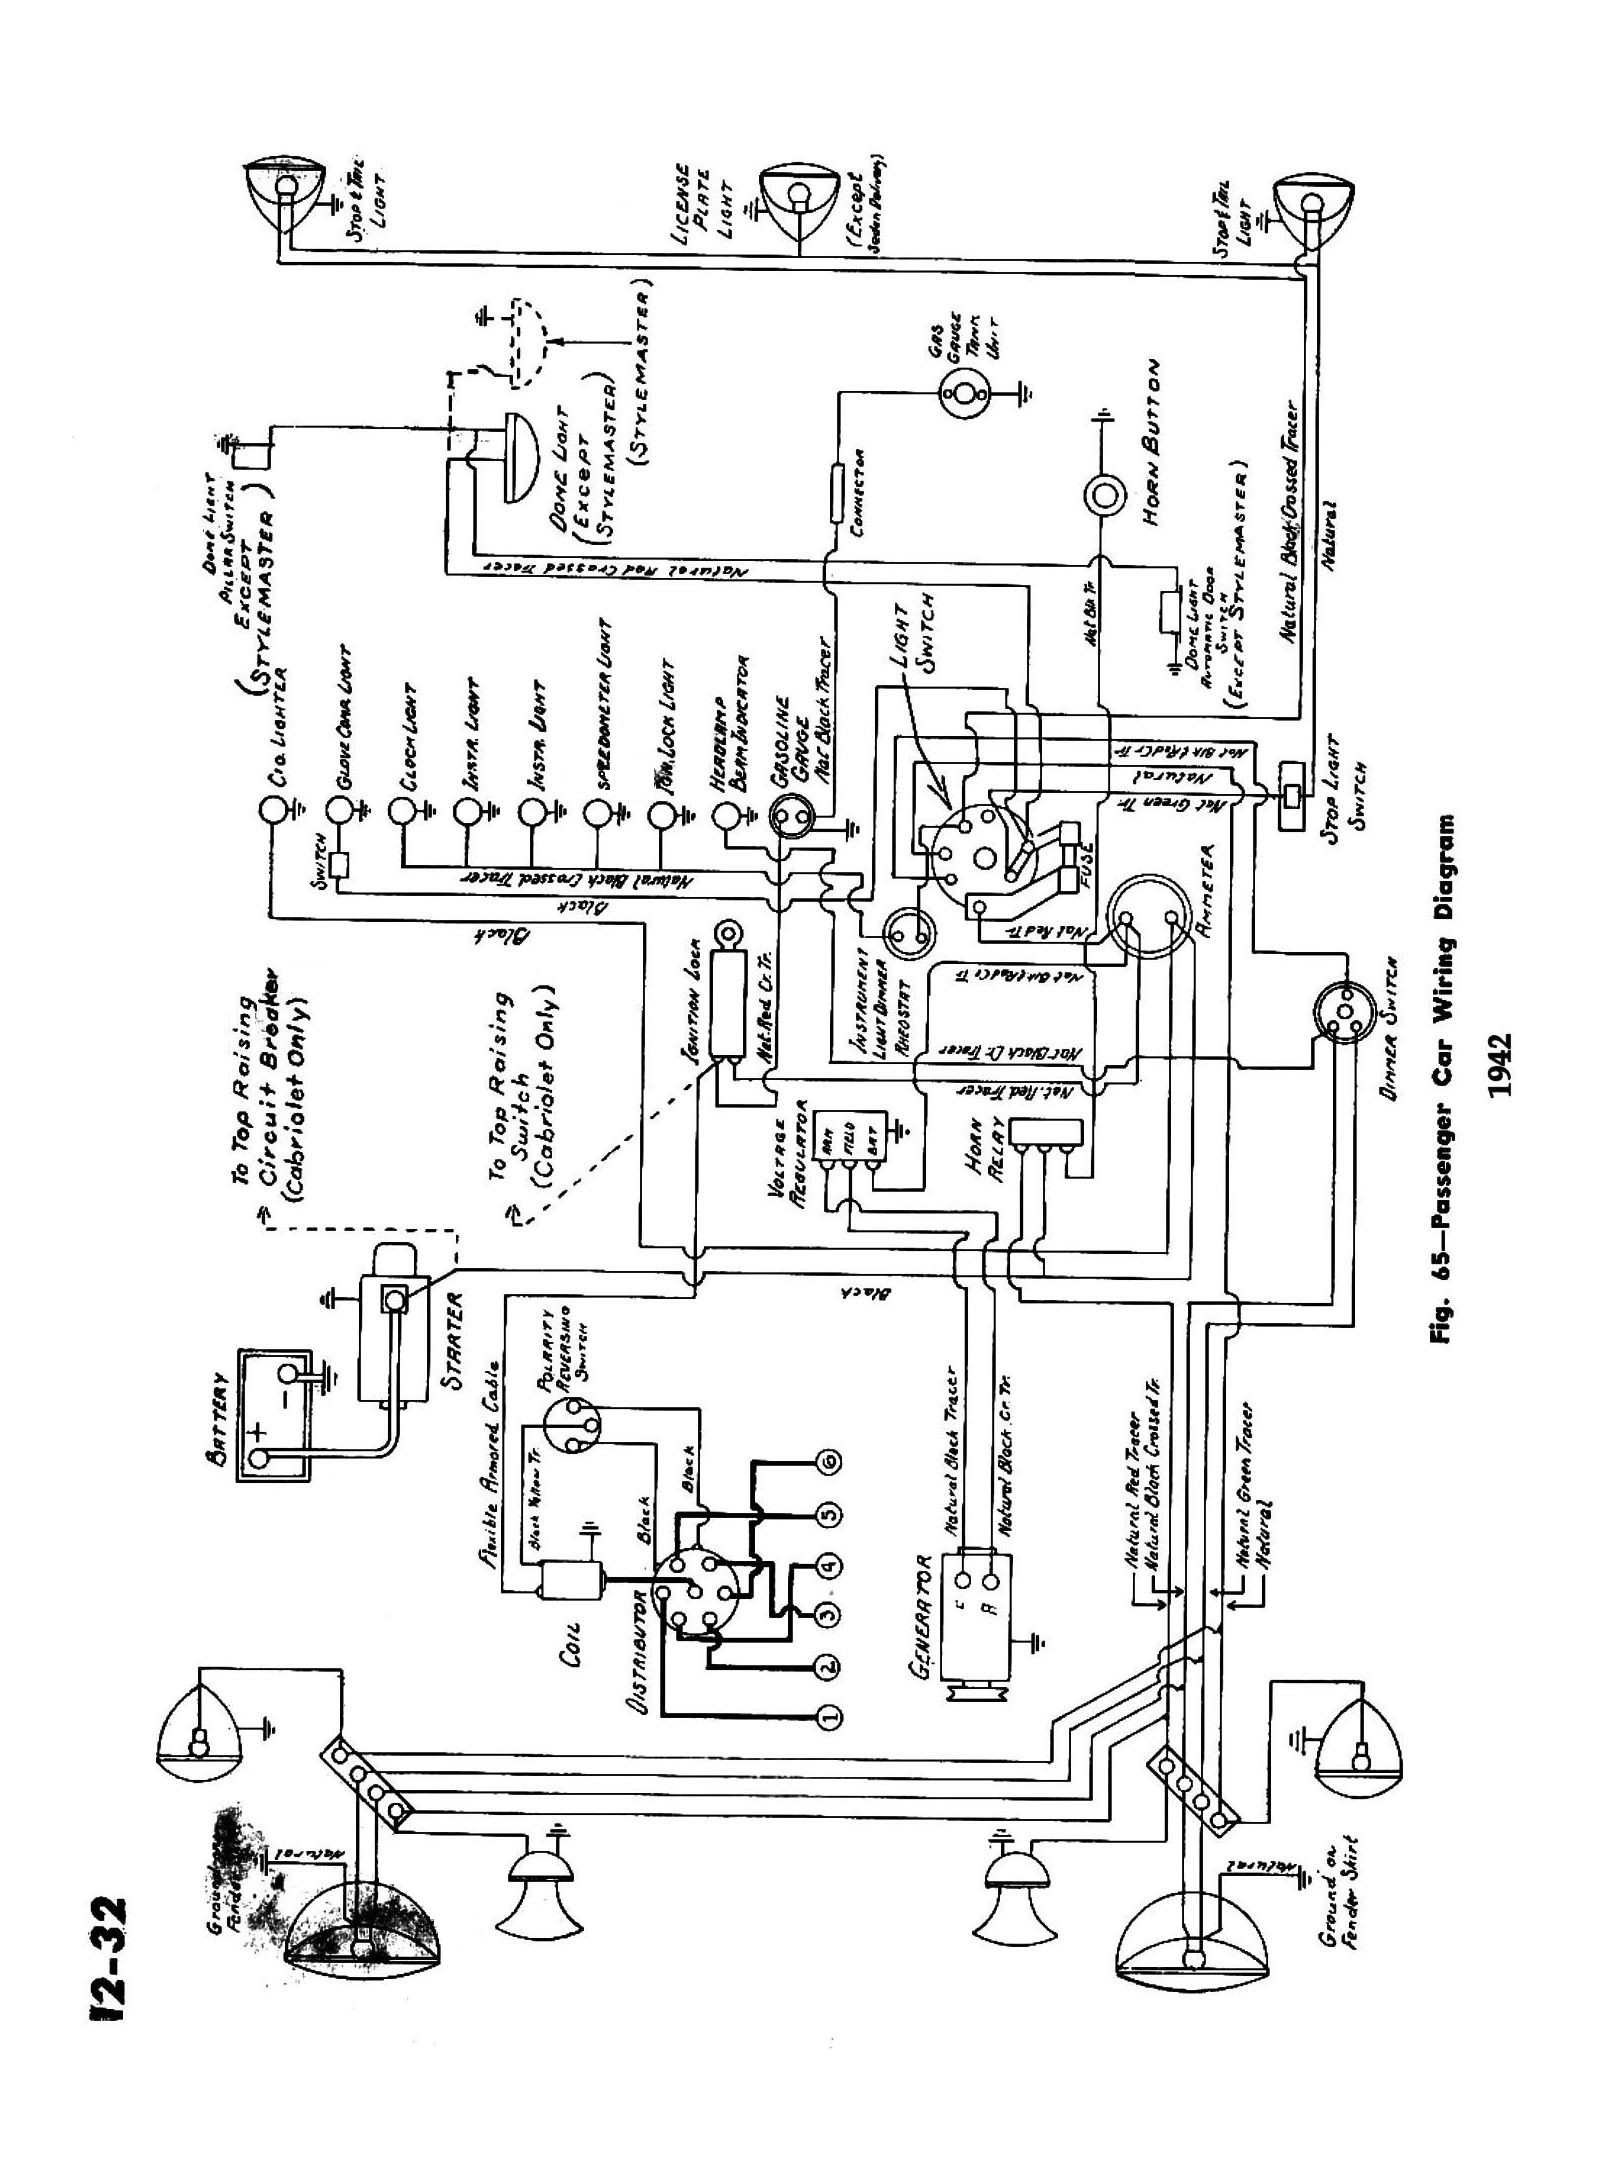 chevy truck wiring schematic wiring diagram International Truck Wiring Diagram Points